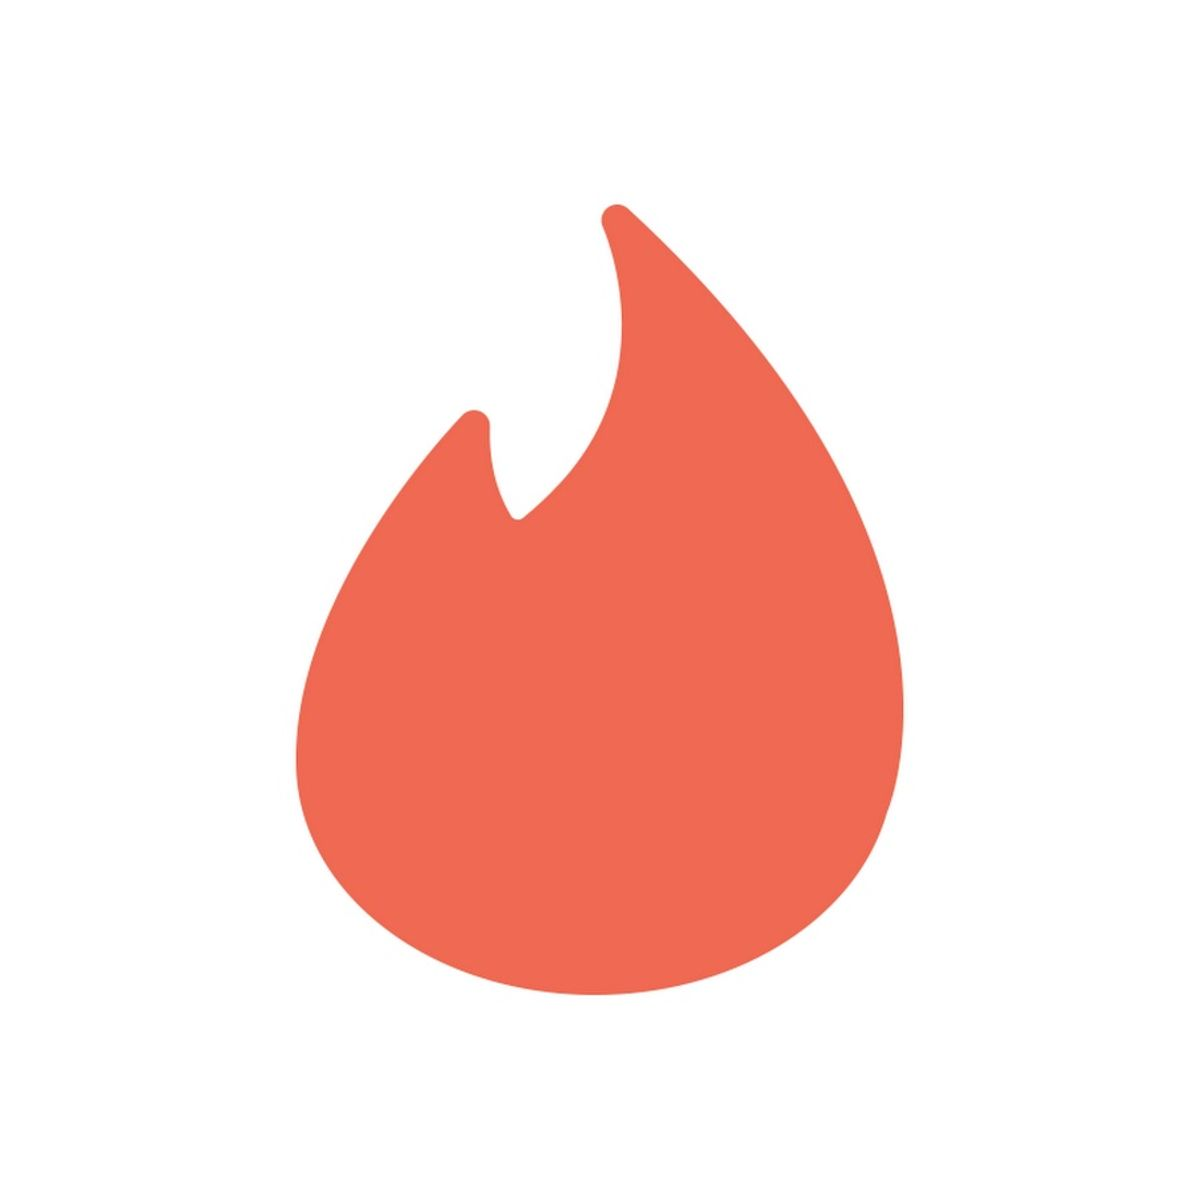 I Used Tinder For One Week So You Don't Have To